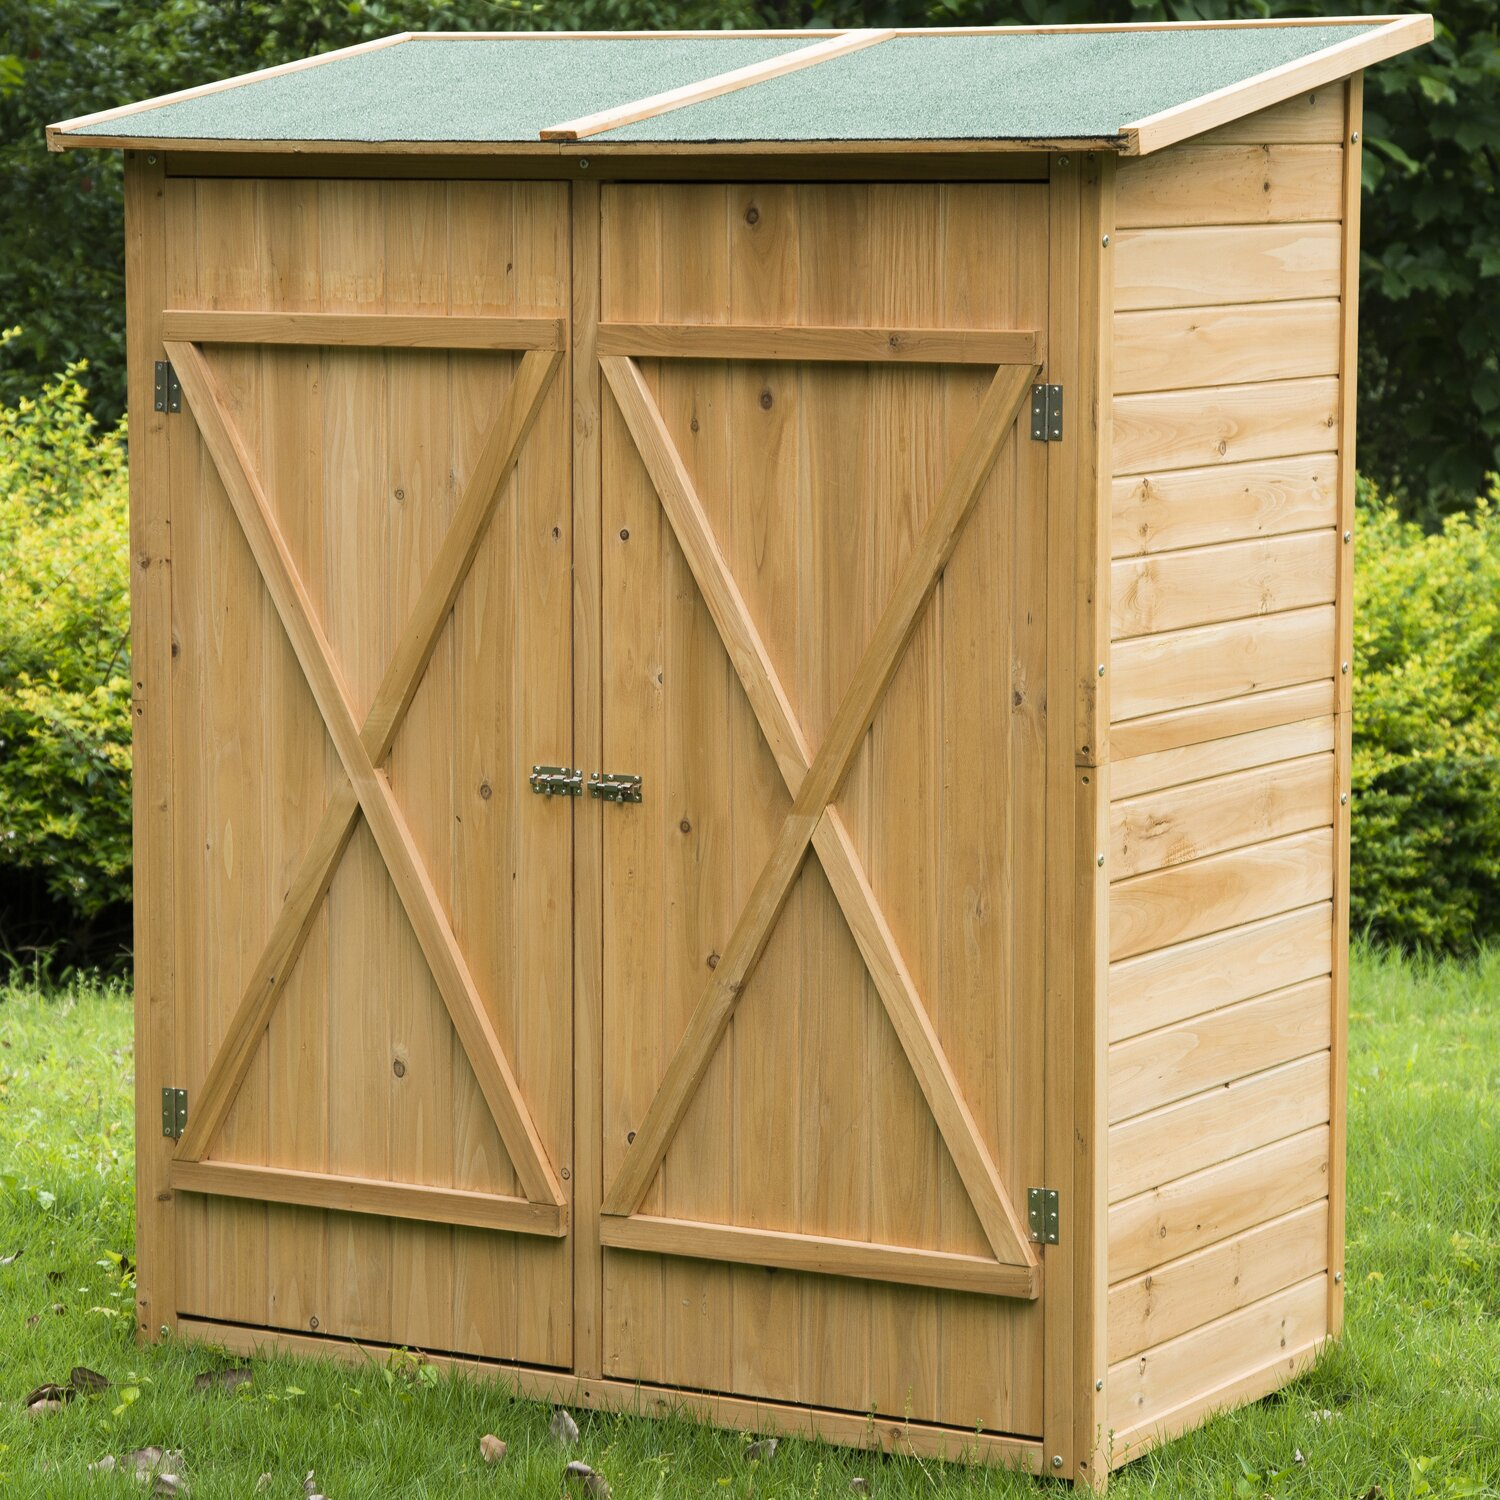 Outsunny 4.56 ft. W x 2.13 ft. D Wood Vertical Tool Shed ...